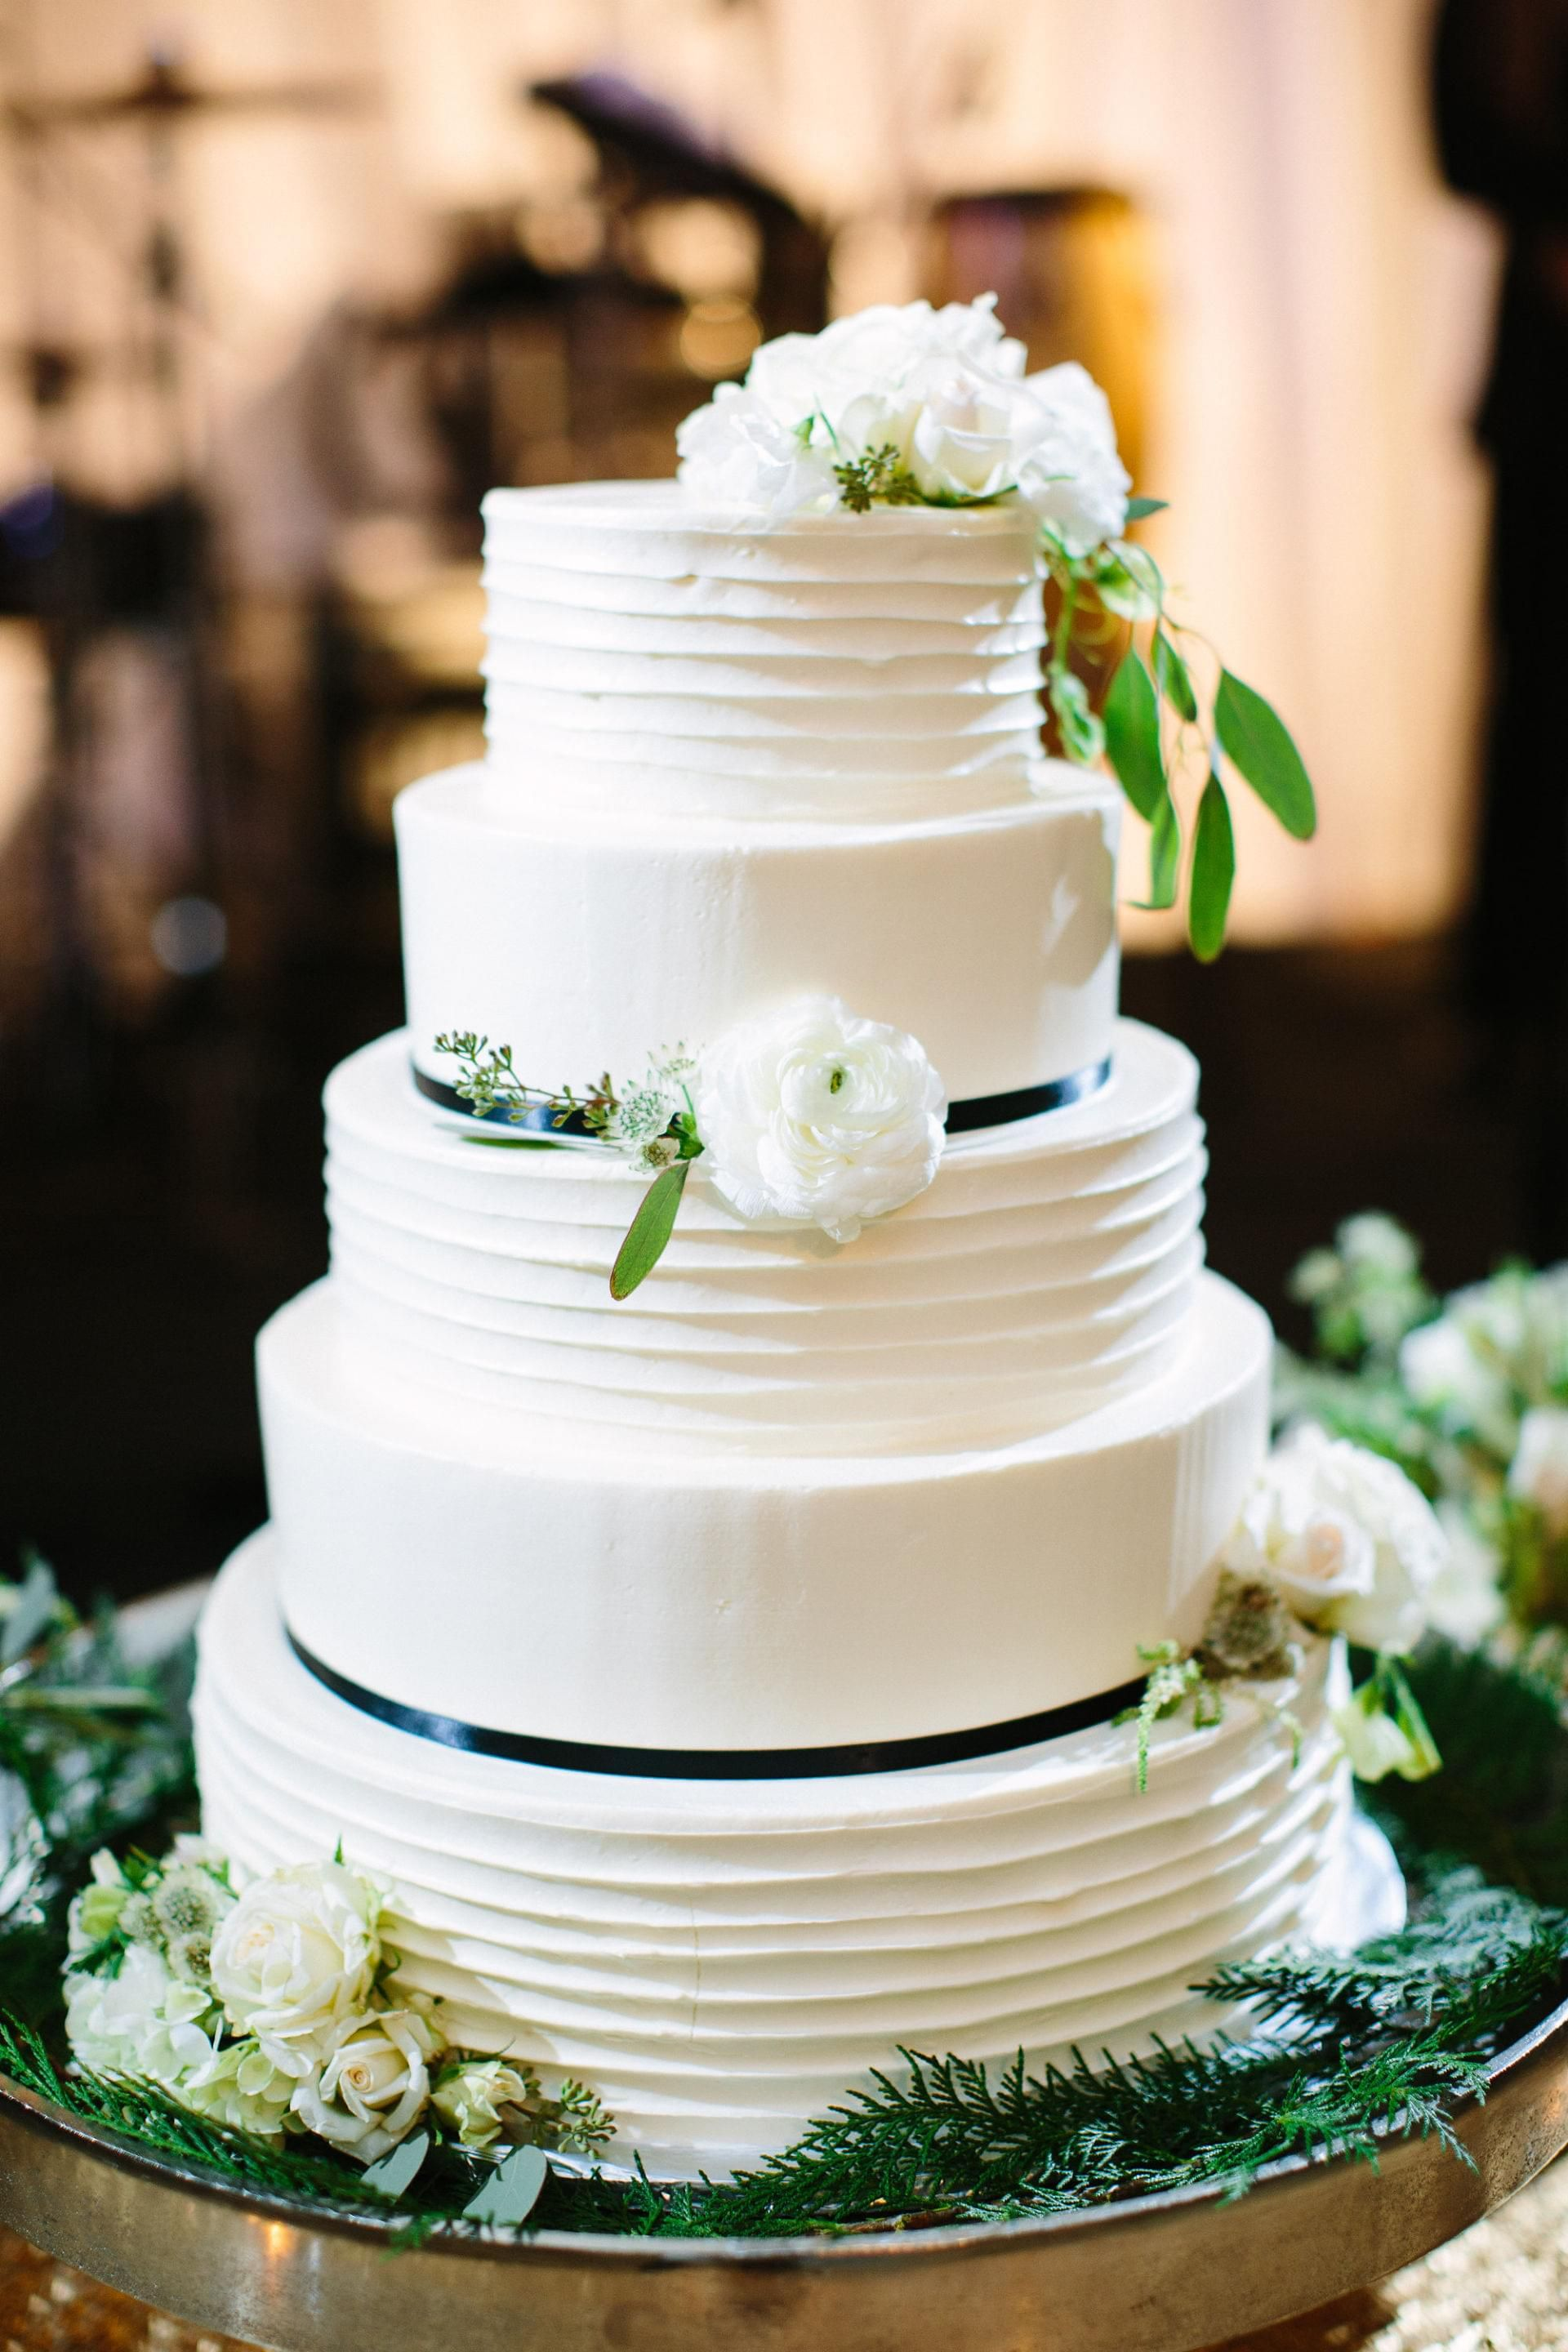 The Smarter Way to Wed | Buttercream wedding cake, Ranunculus and ...